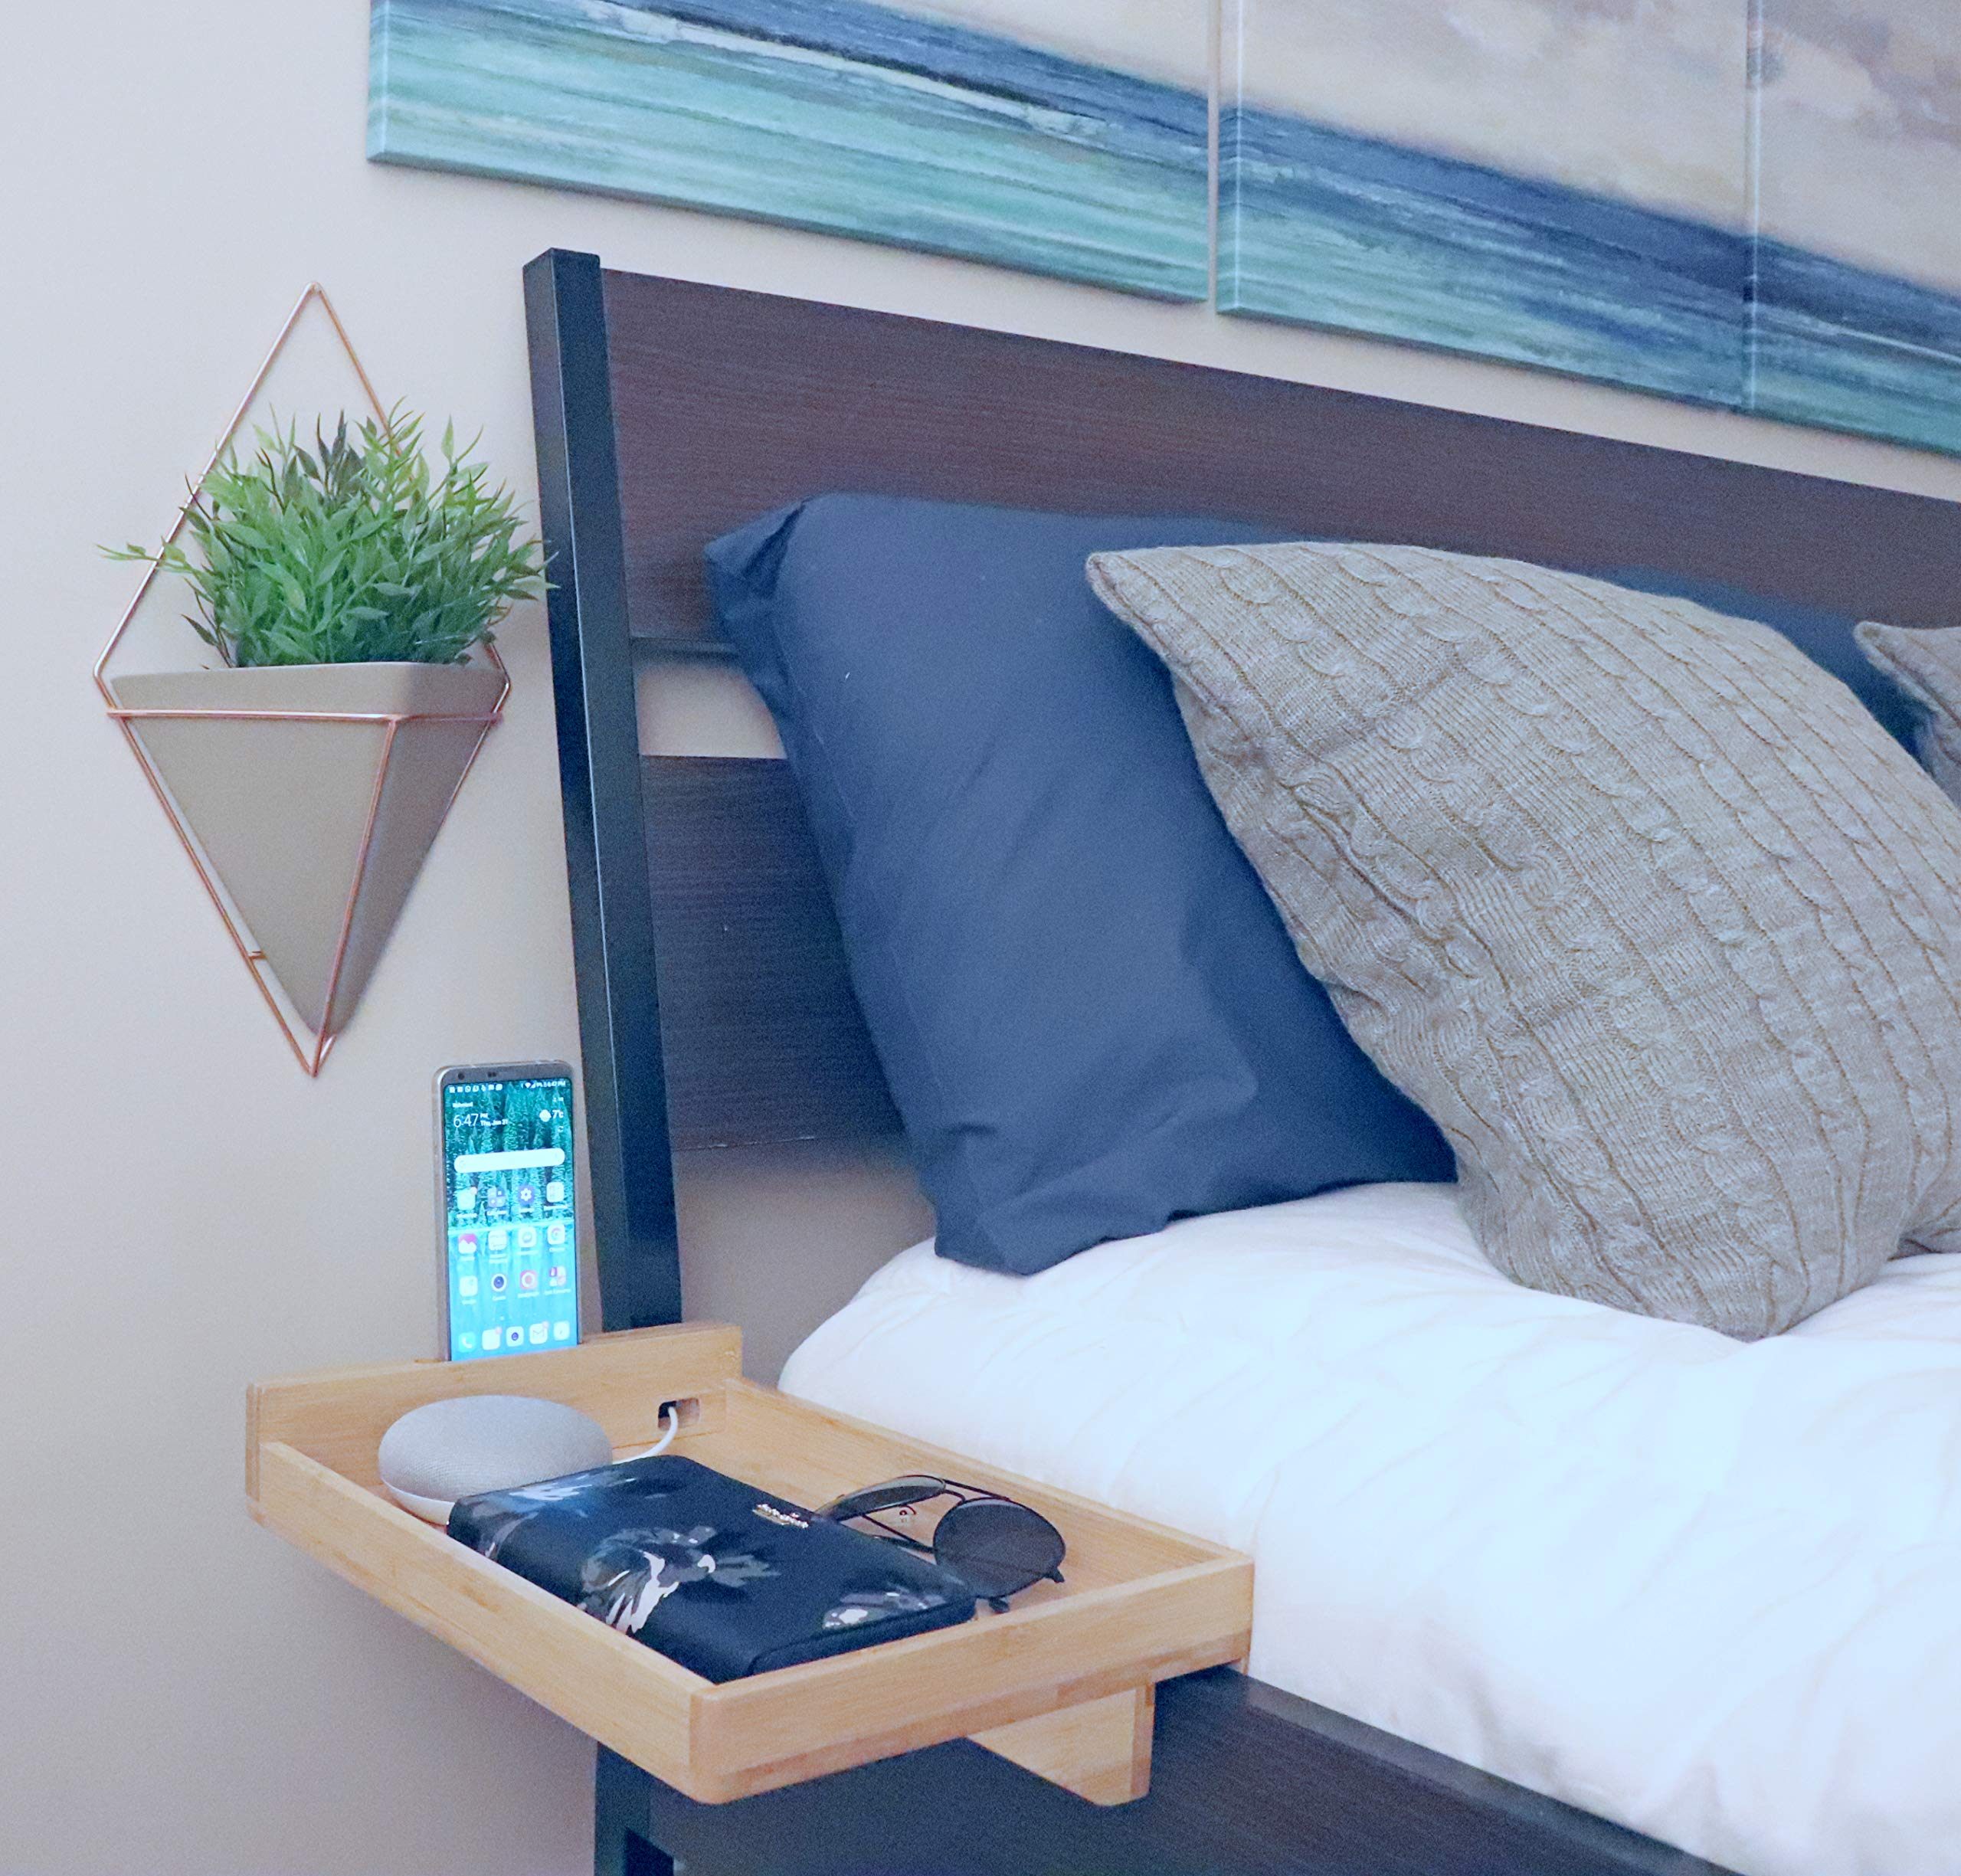 Ovivo Designs Floating Night Stand | Bamboo Bedside Shelf, Caddy | Modern Organizer with Built-in Cell Phone Holder and USB Cable Slot (Regular Size - Left Side, Bamboo)